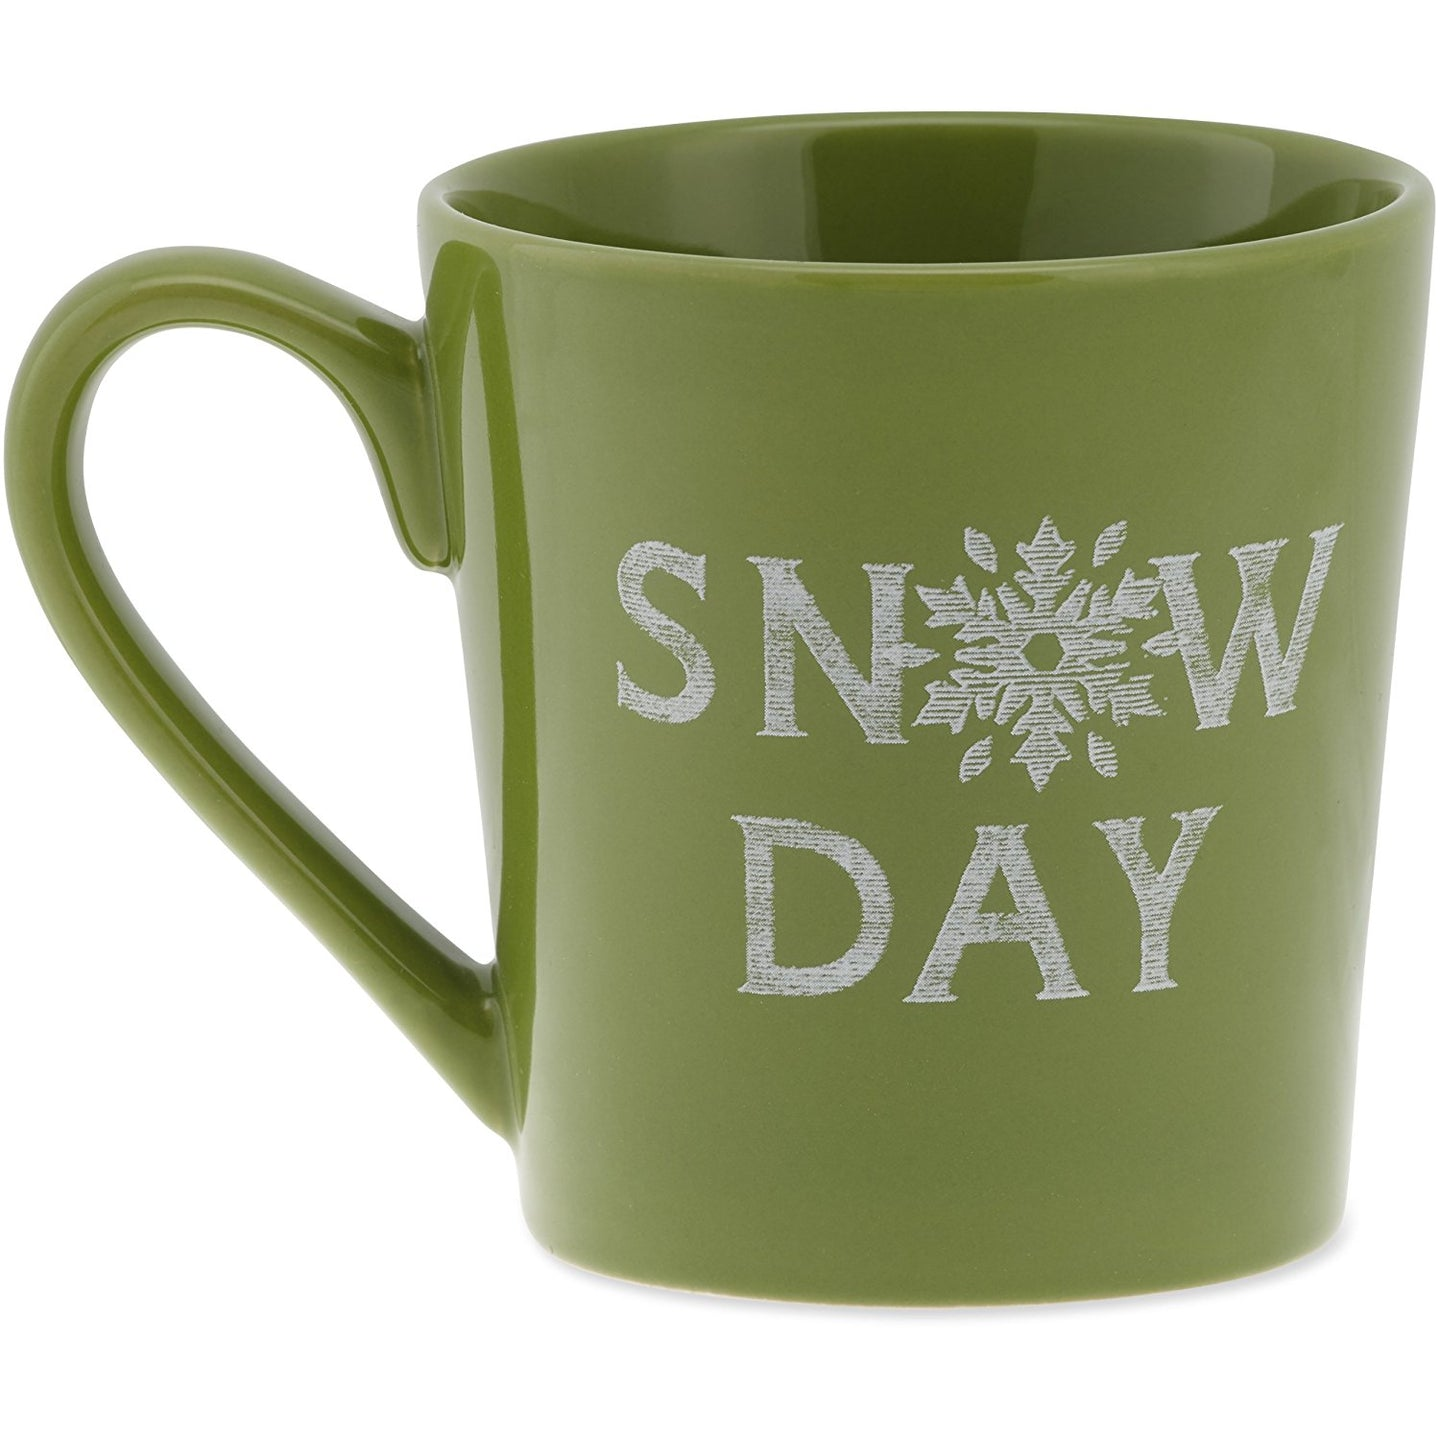 Snow Day Everyday Mug by Life is good